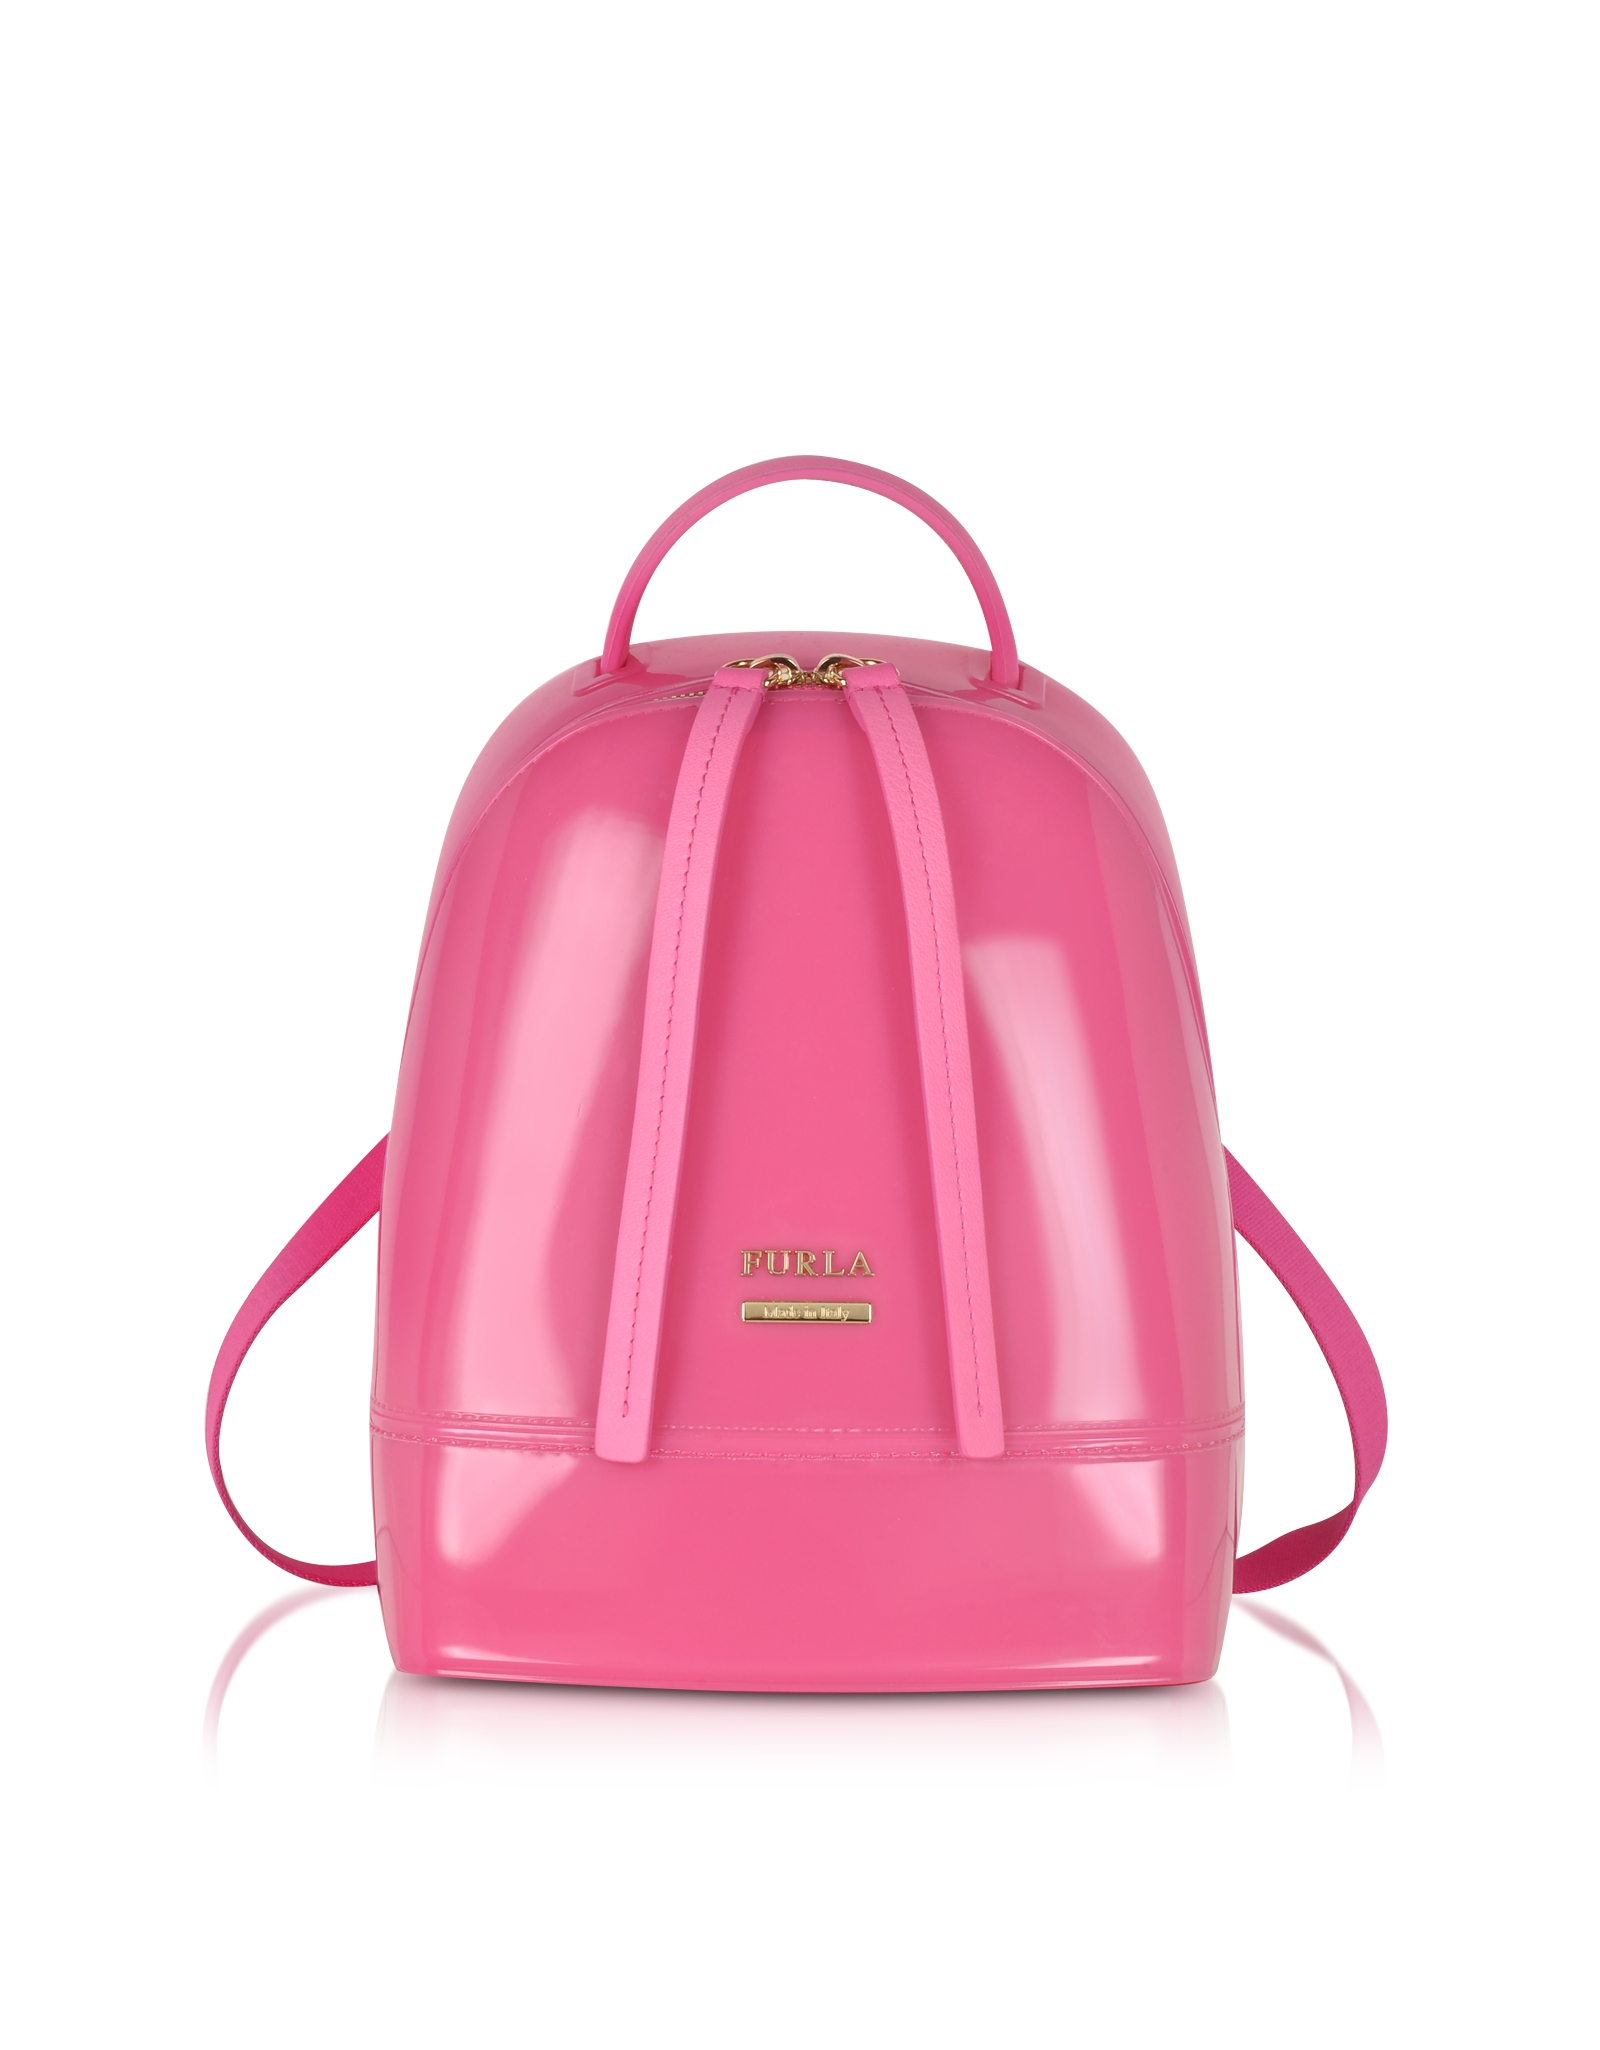 Furla Candy Jelly Rubber Mini Backpack in Pink | Lyst